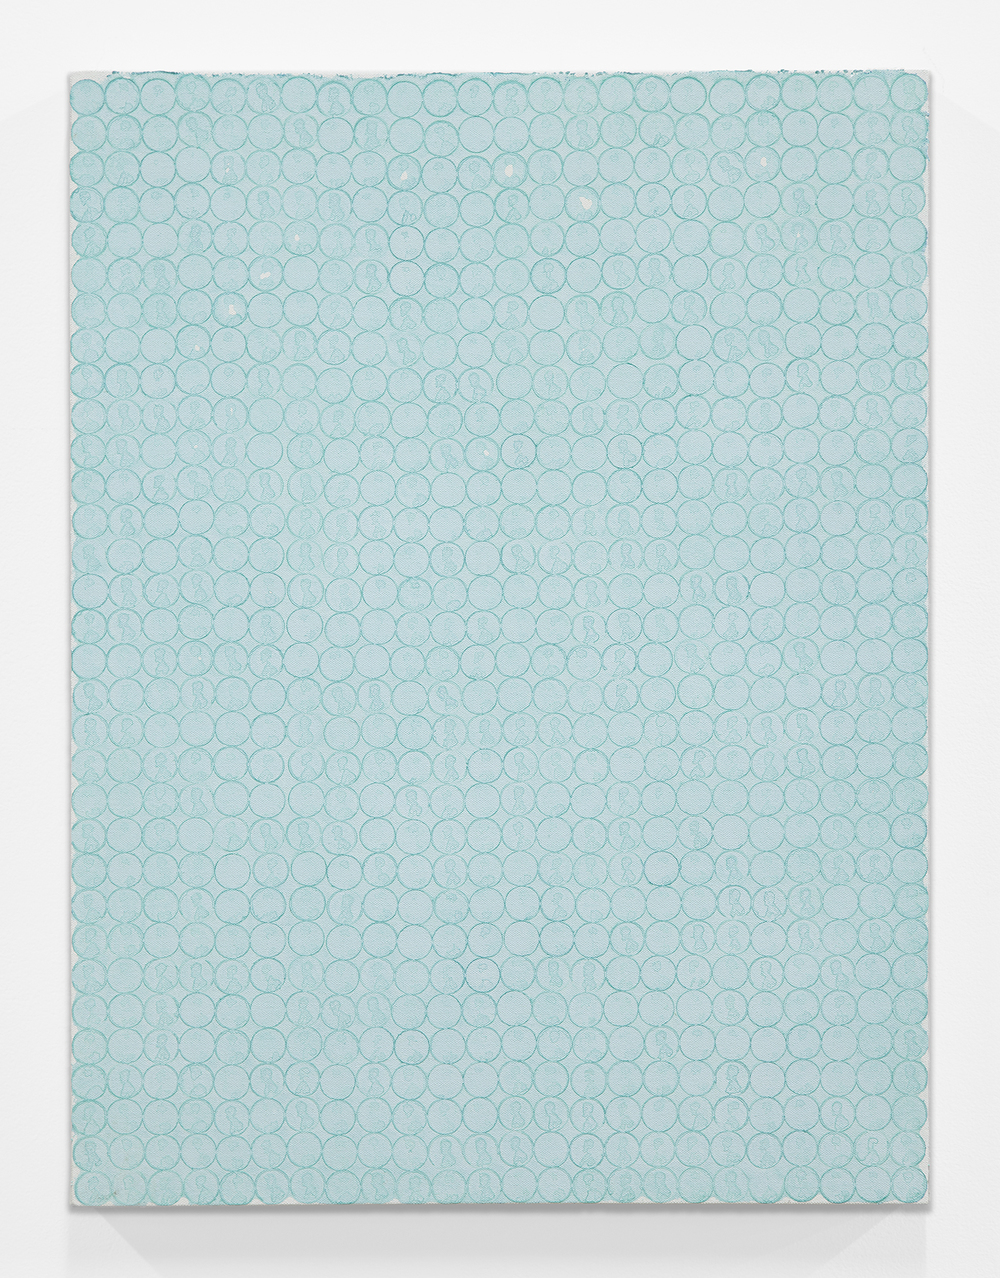 Nick Darmstaedter Blow Dart, 2013 Oxidized copper on canvas 24 x 18 inches